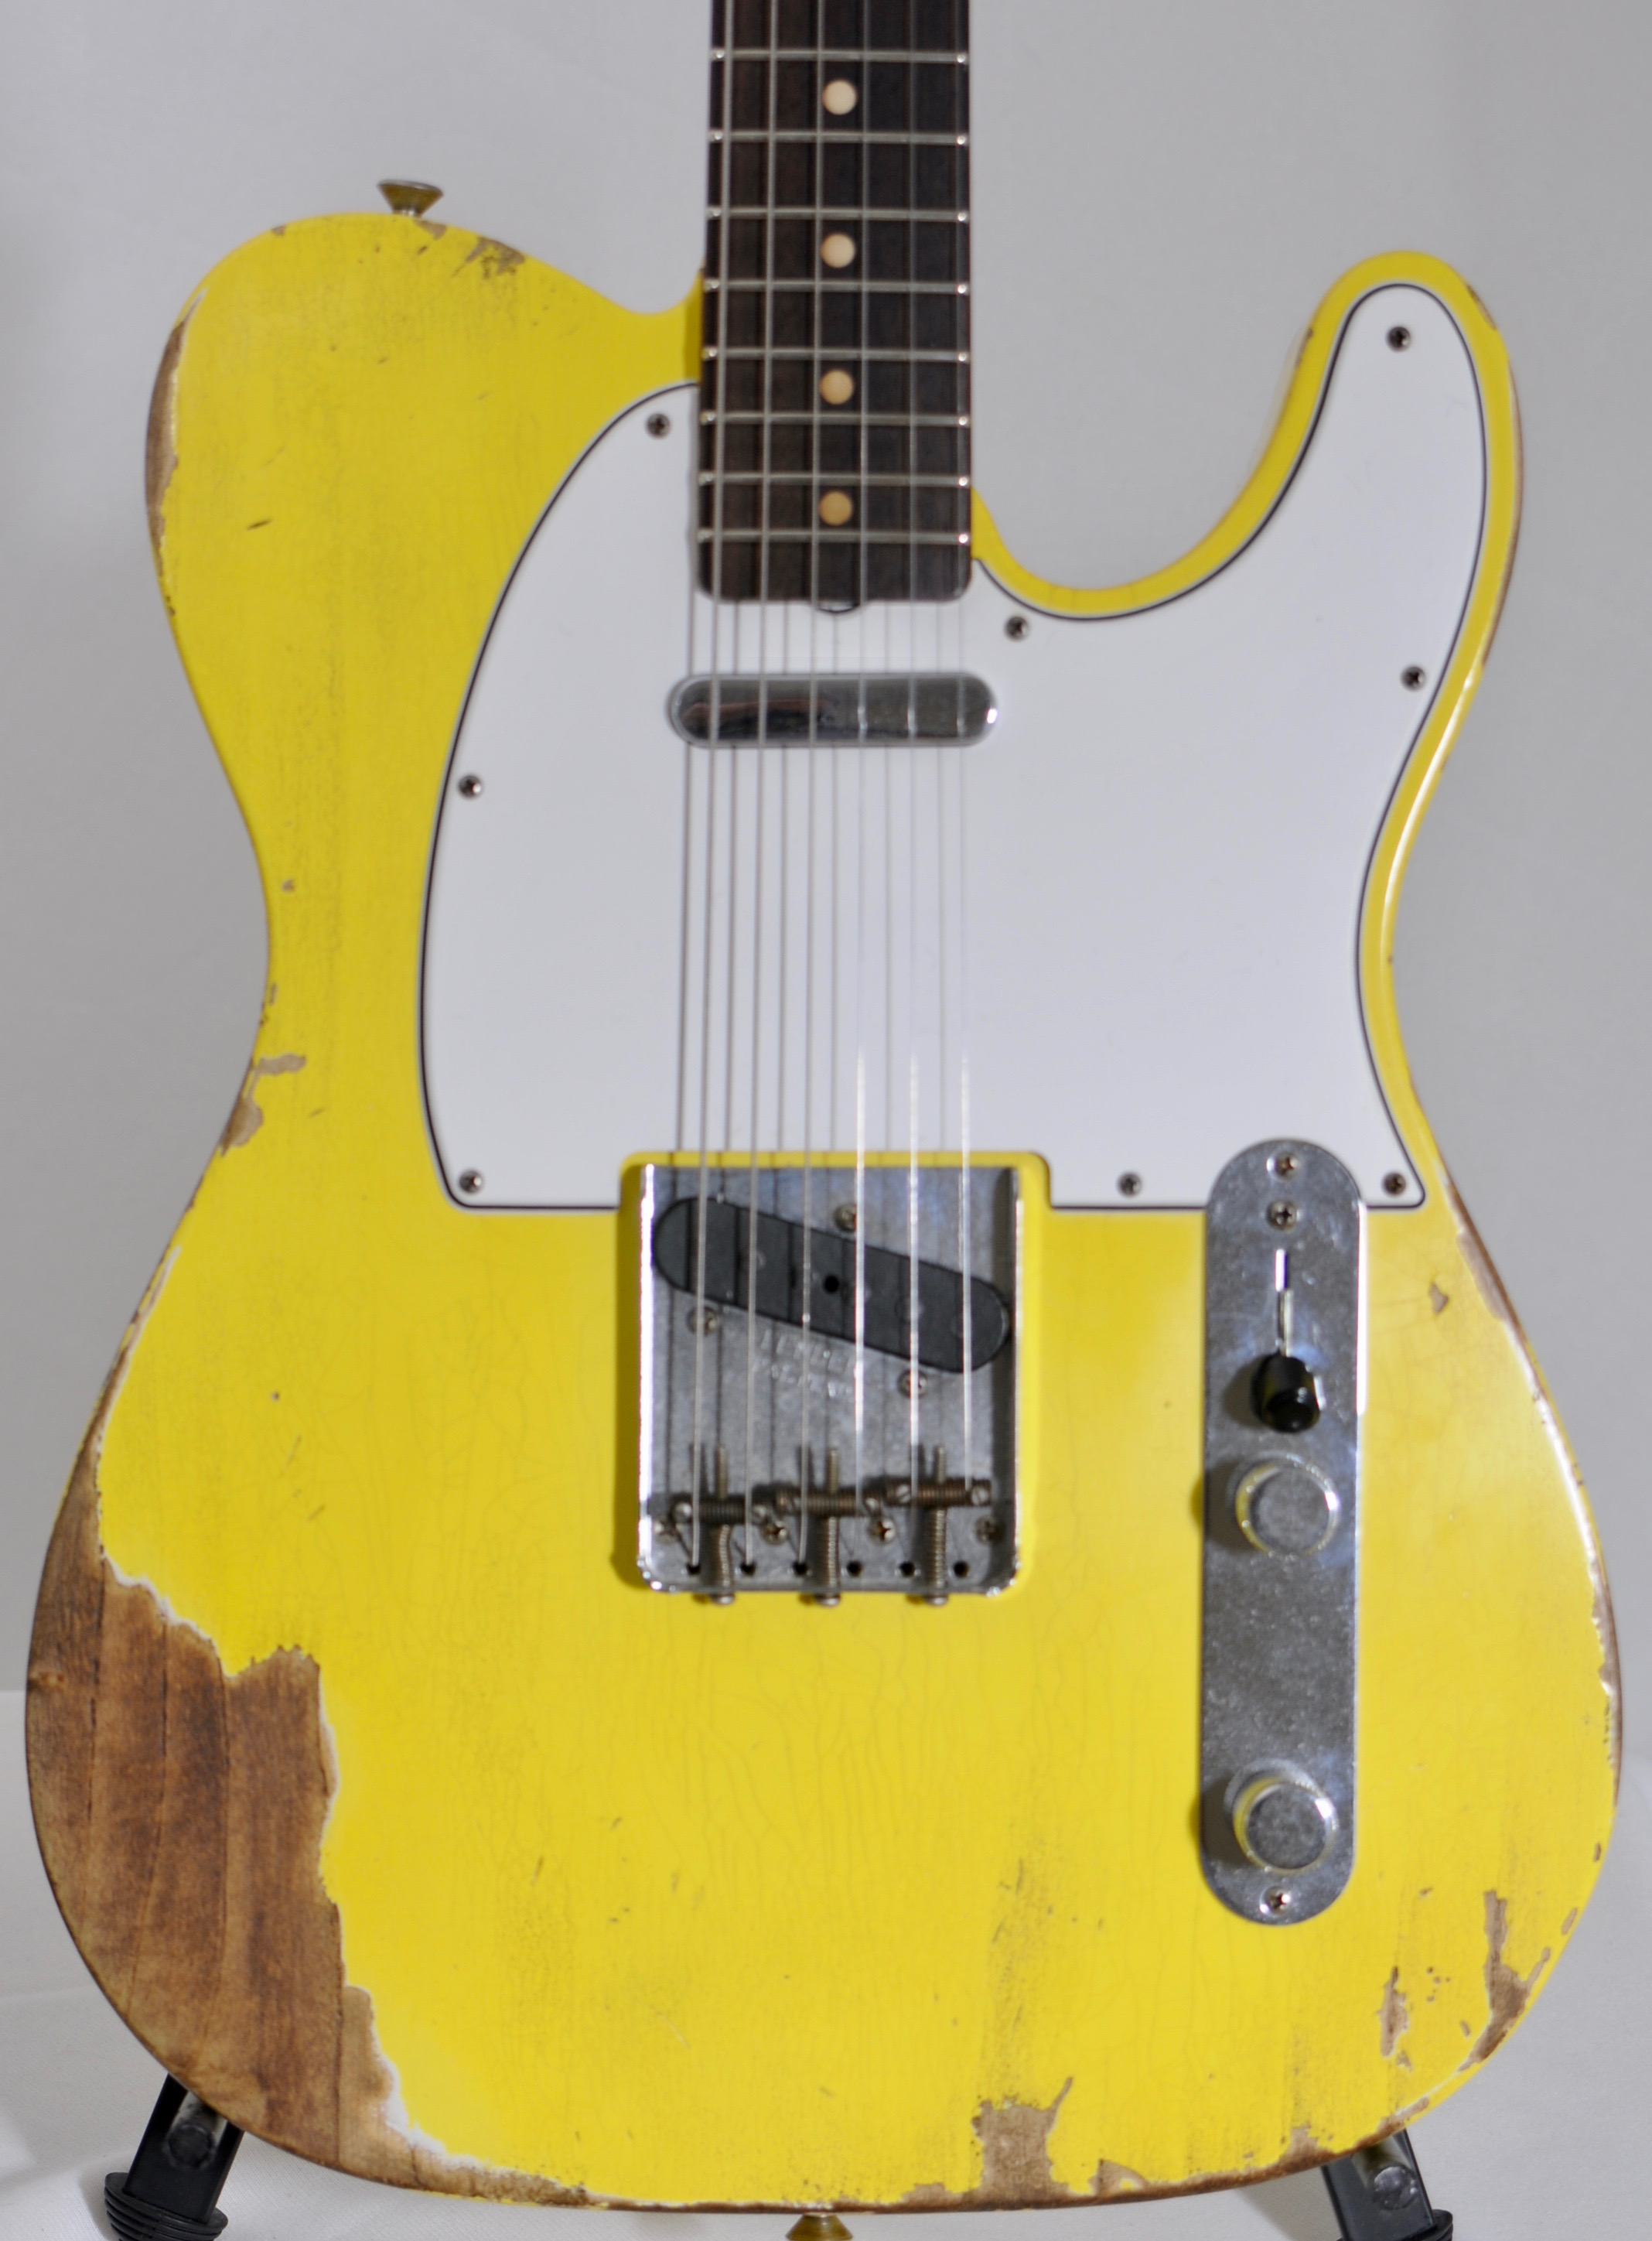 2018 Fender Custom Shop Wildwood 10 1959 Tele